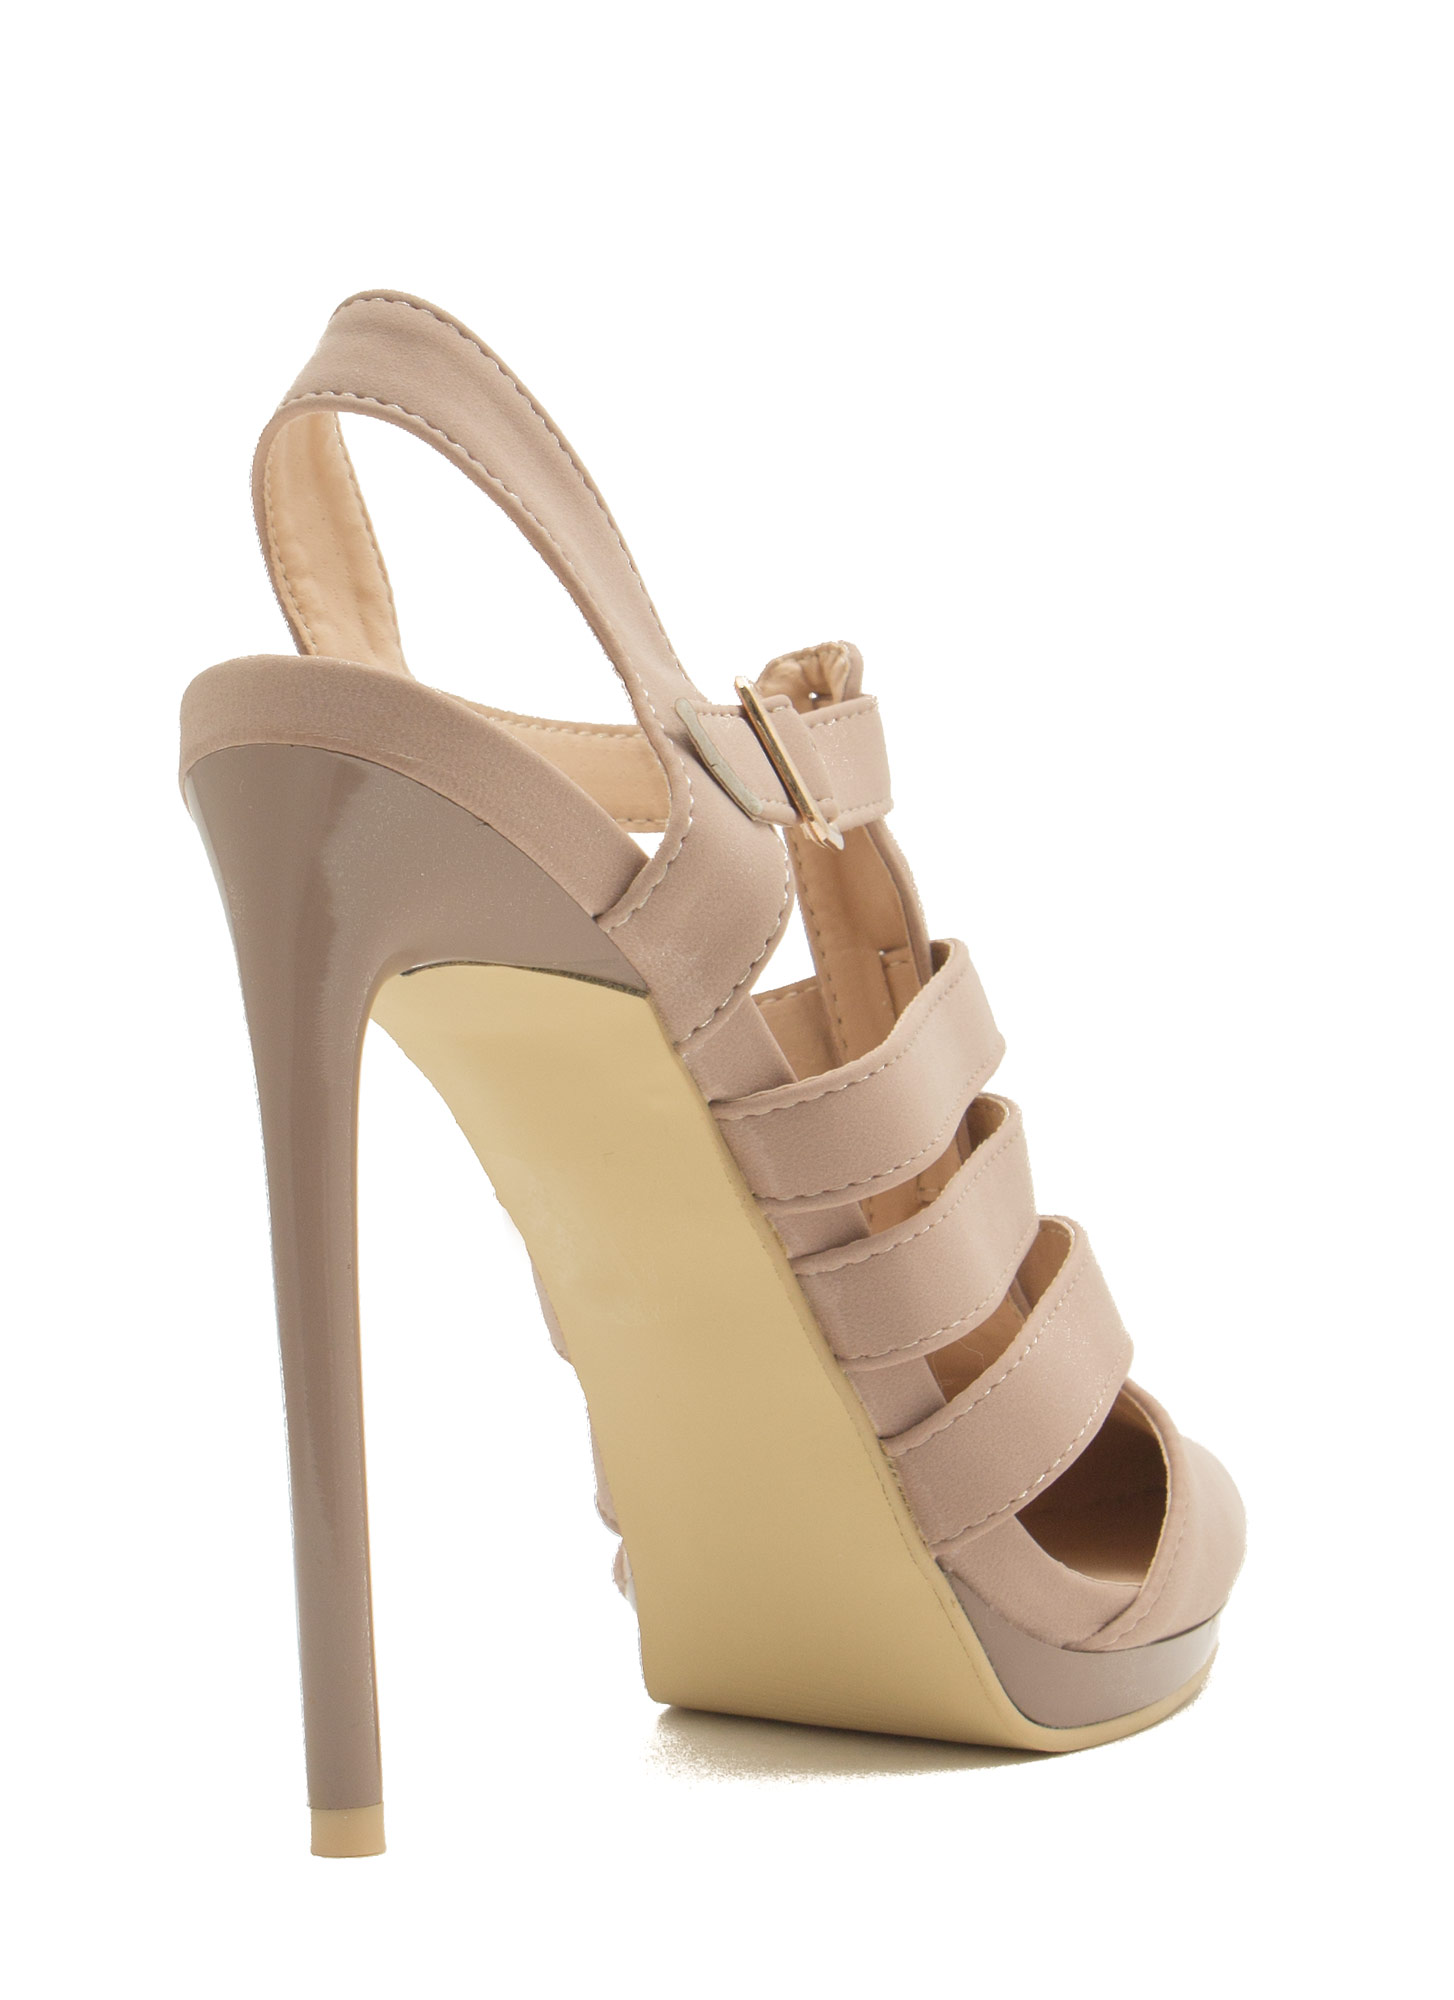 Get Your Point Across Strappy Heels NUDE